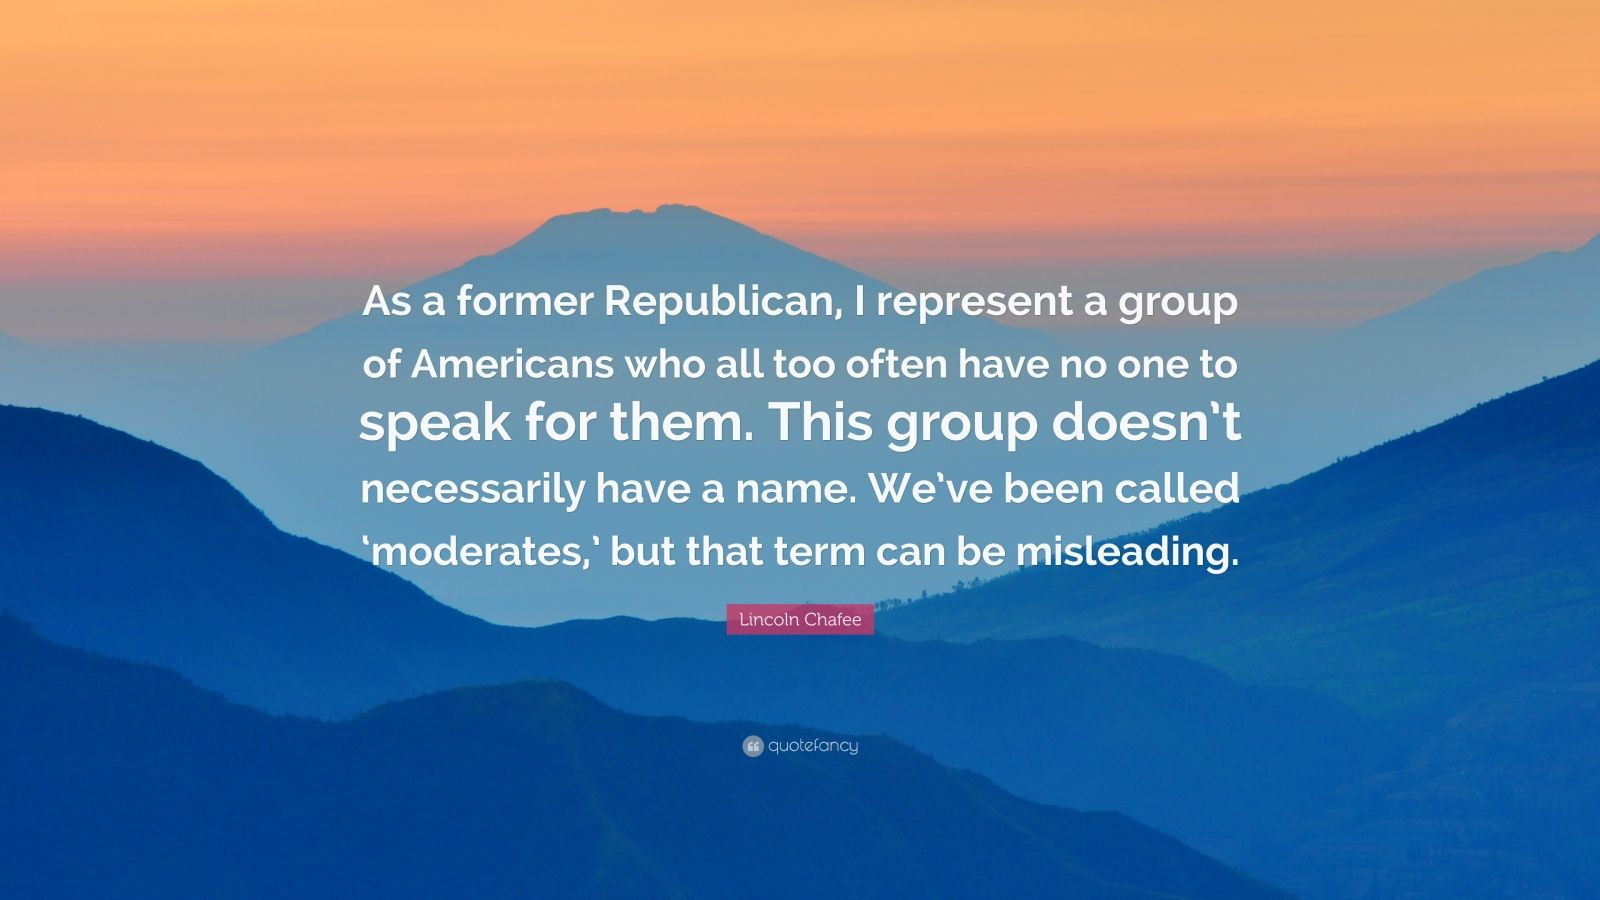 """Lincoln Chafee Quote: """"As a former Republican, I represent a group of Americans who all too often have no one to speak for them. This group doesn't necessarily have a name. We've been called 'moderates,' but that term can be misleading."""""""